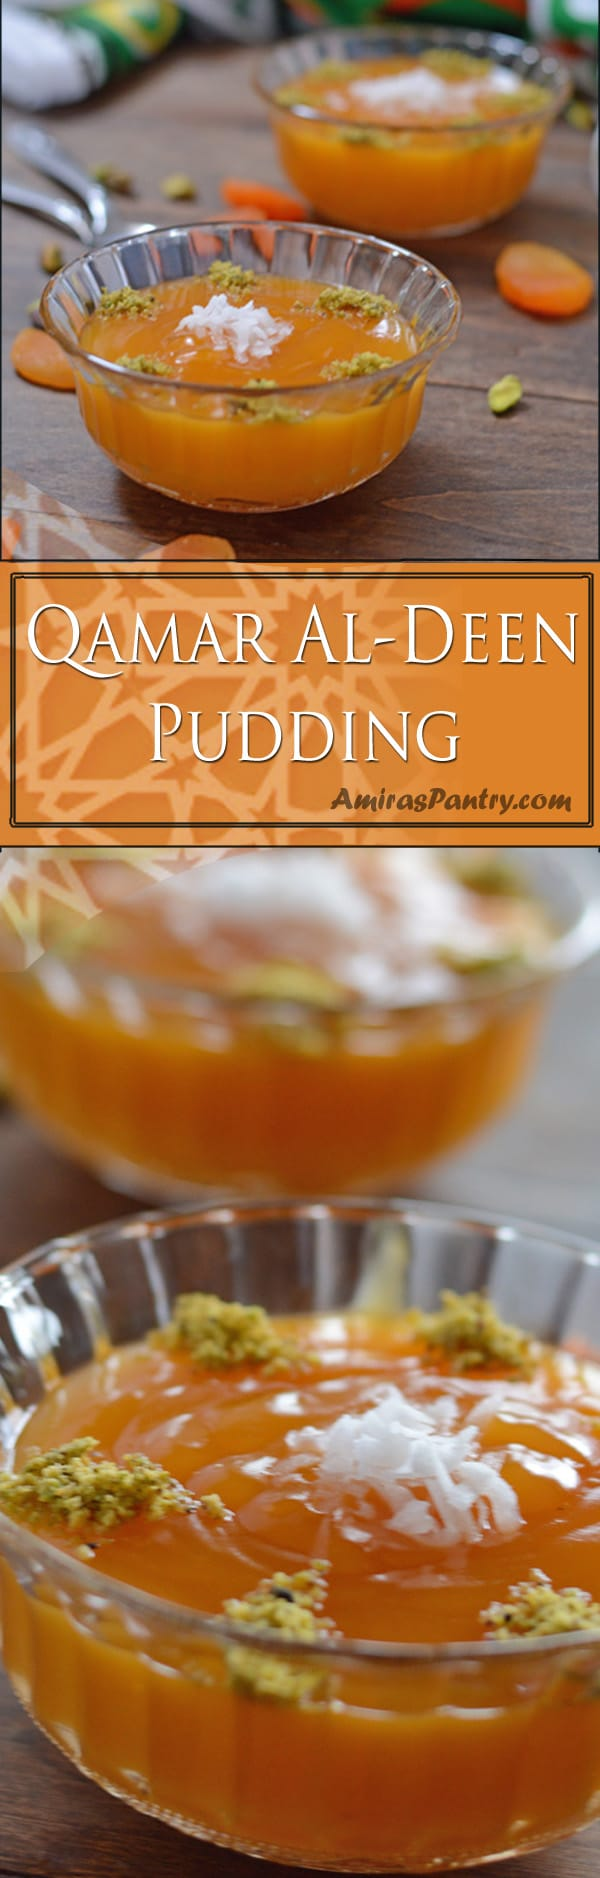 Amar al deen pudding, also known as kamar al deen or qamar aldeen mohalabeya, is an irresistible apricot pudding, creamy, fragrant and sweetened to your perfection. One of the most famous Ramadan food recipes.